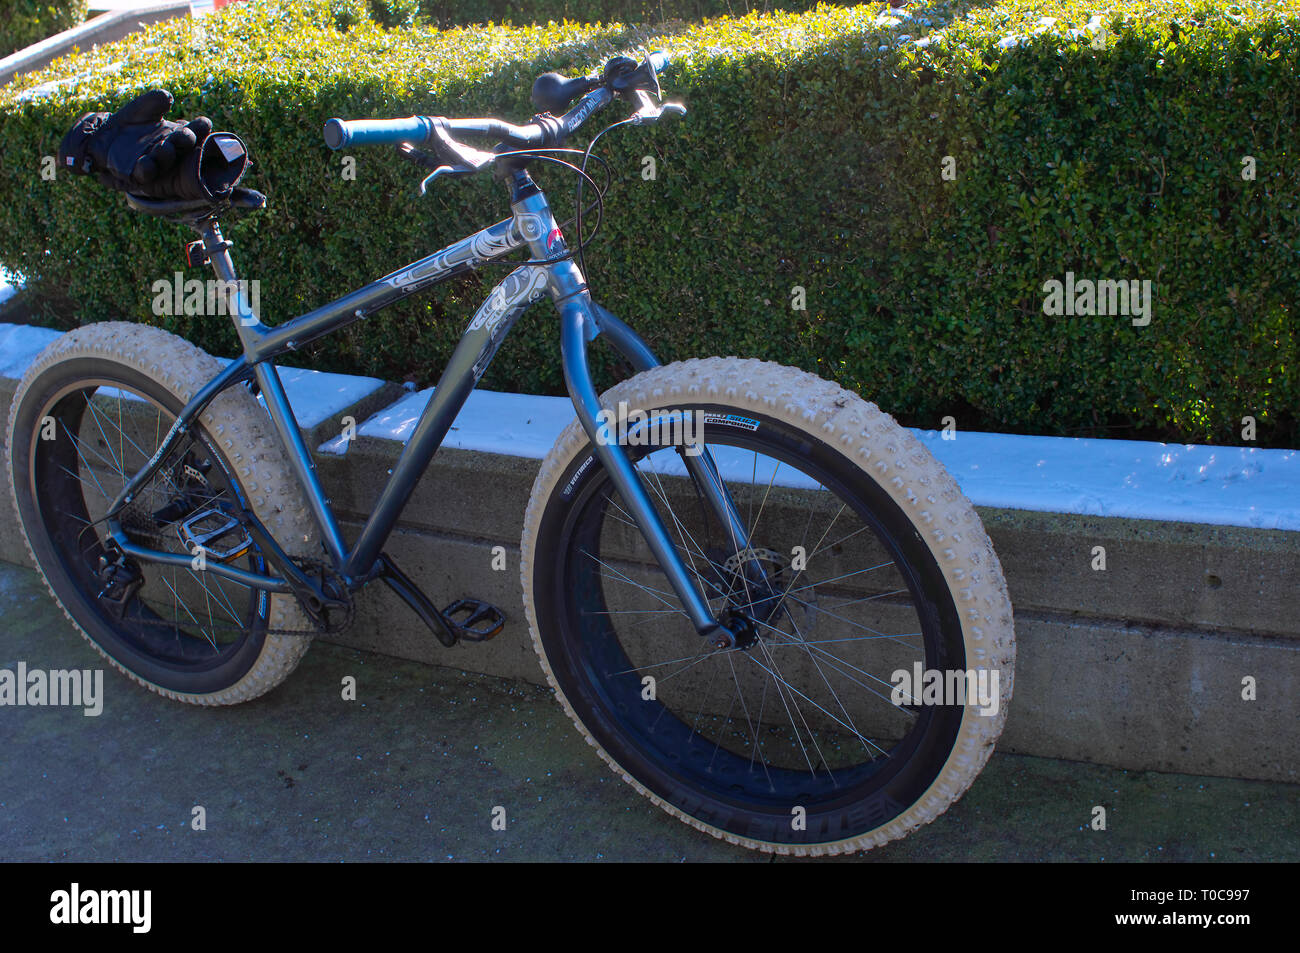 Blue bicycle with large, nubby tires leaning against a cement foundation with shrubs in the background. - Stock Image